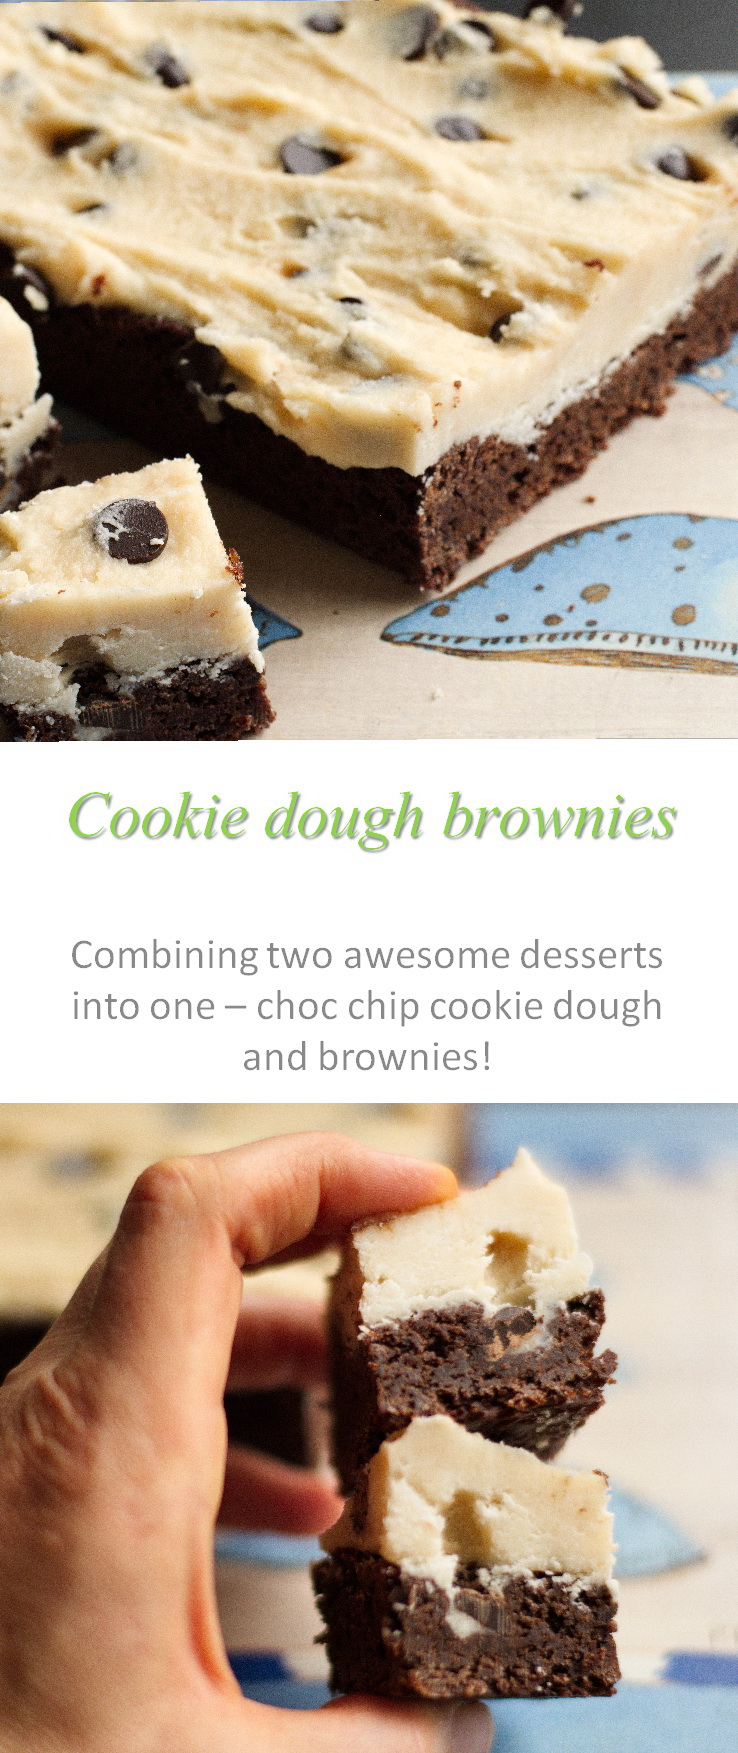 These chocolate chip cookie dough brownies are an awesome combination of chocolate chip cookie dough and brownies - all possible as gluten and dairy-free and still yummy! #brownies